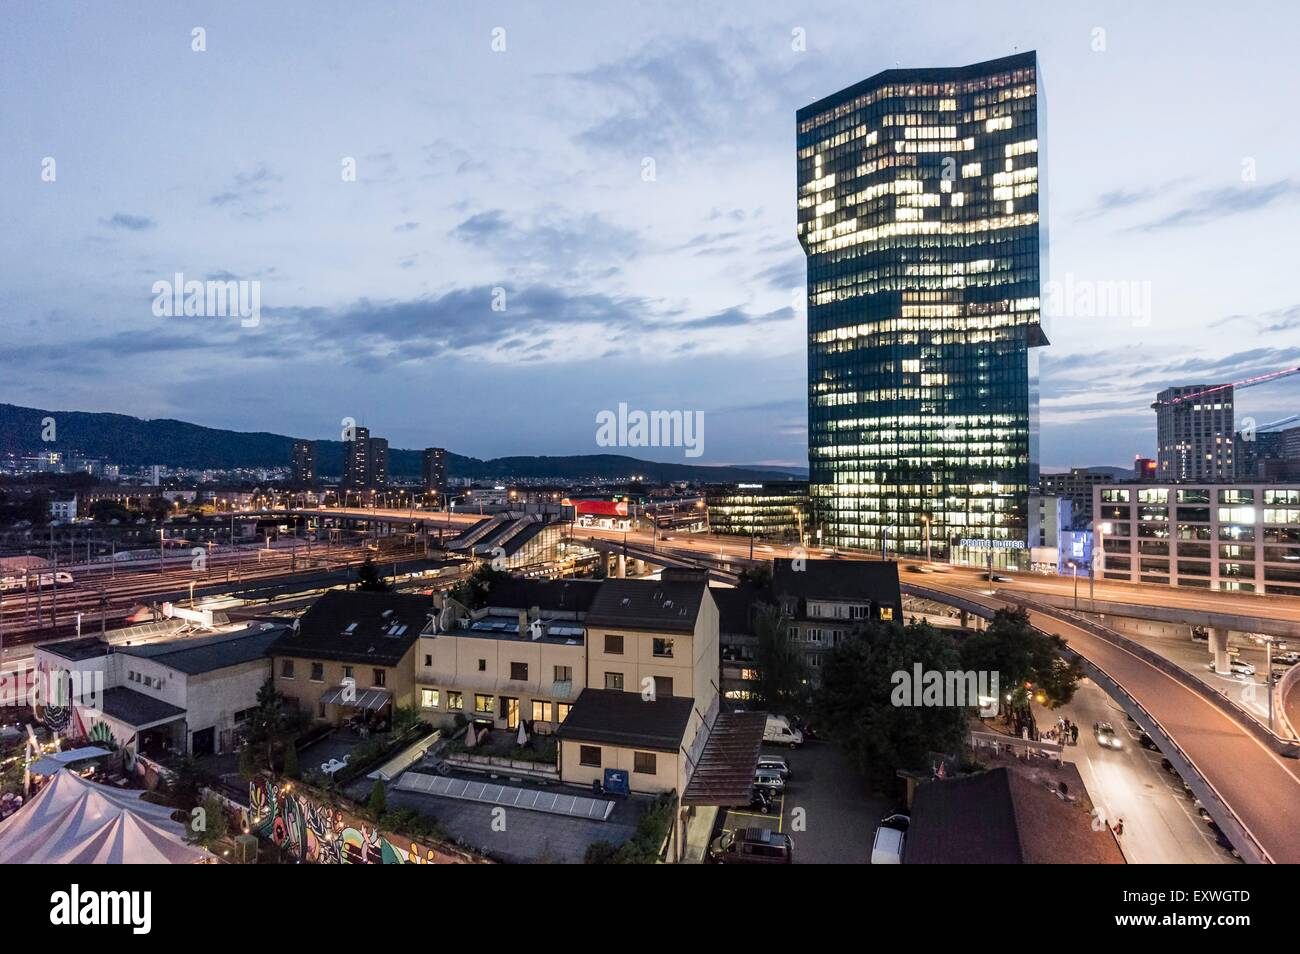 Prime tower, Zurich, Switzerland, Europe - Stock Image